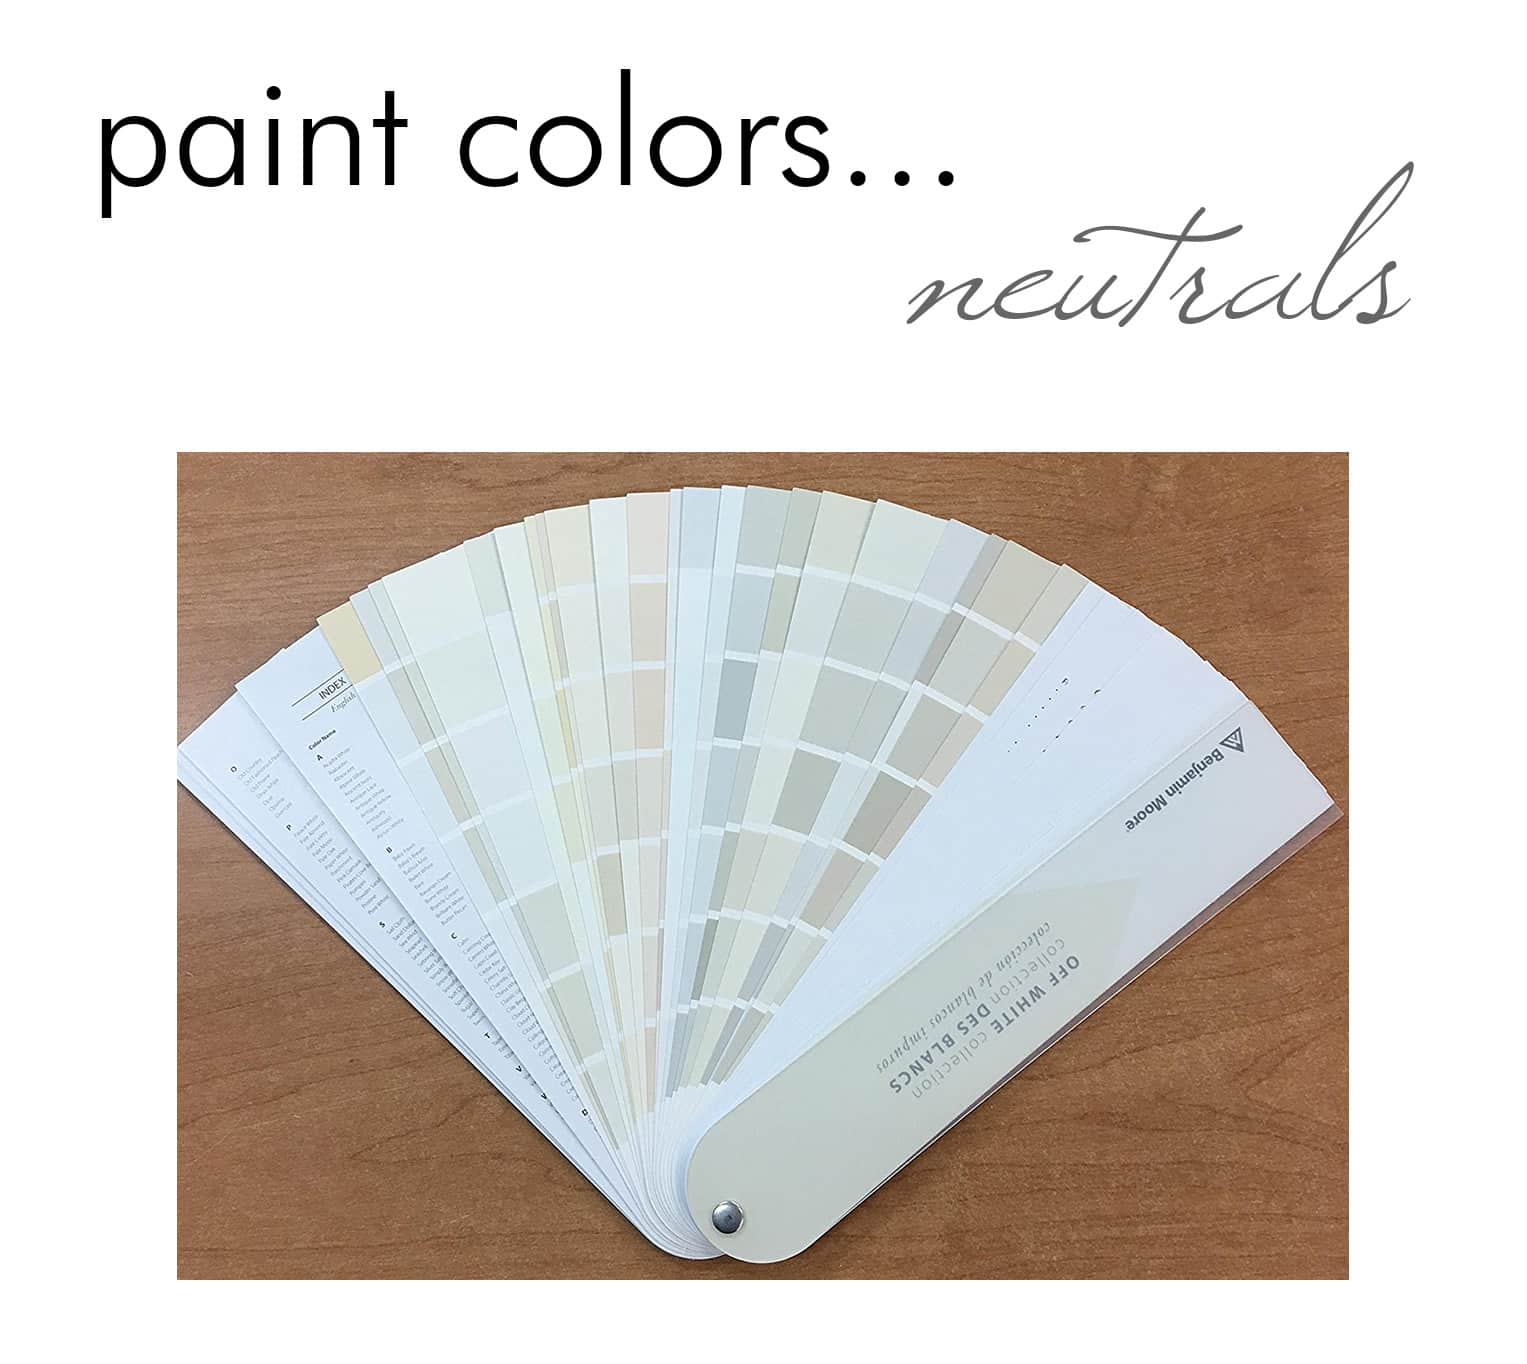 picking paint colors is simple with this neutral off-white swatch book from benjamin moore - darci hether new york